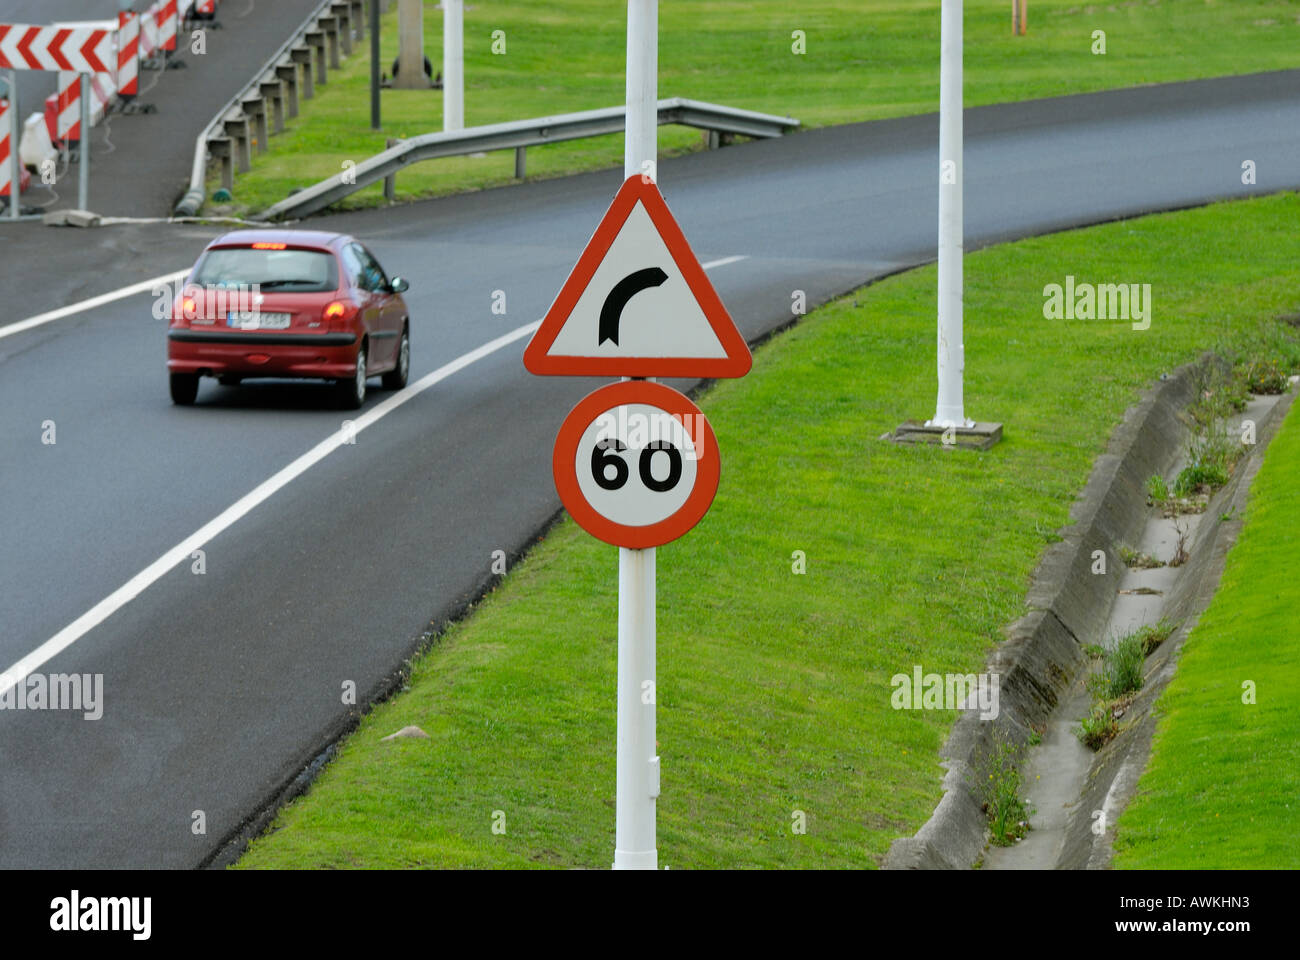 Traffic Sign On Road And Car Maximum Speed Limit 60 Km H Caution